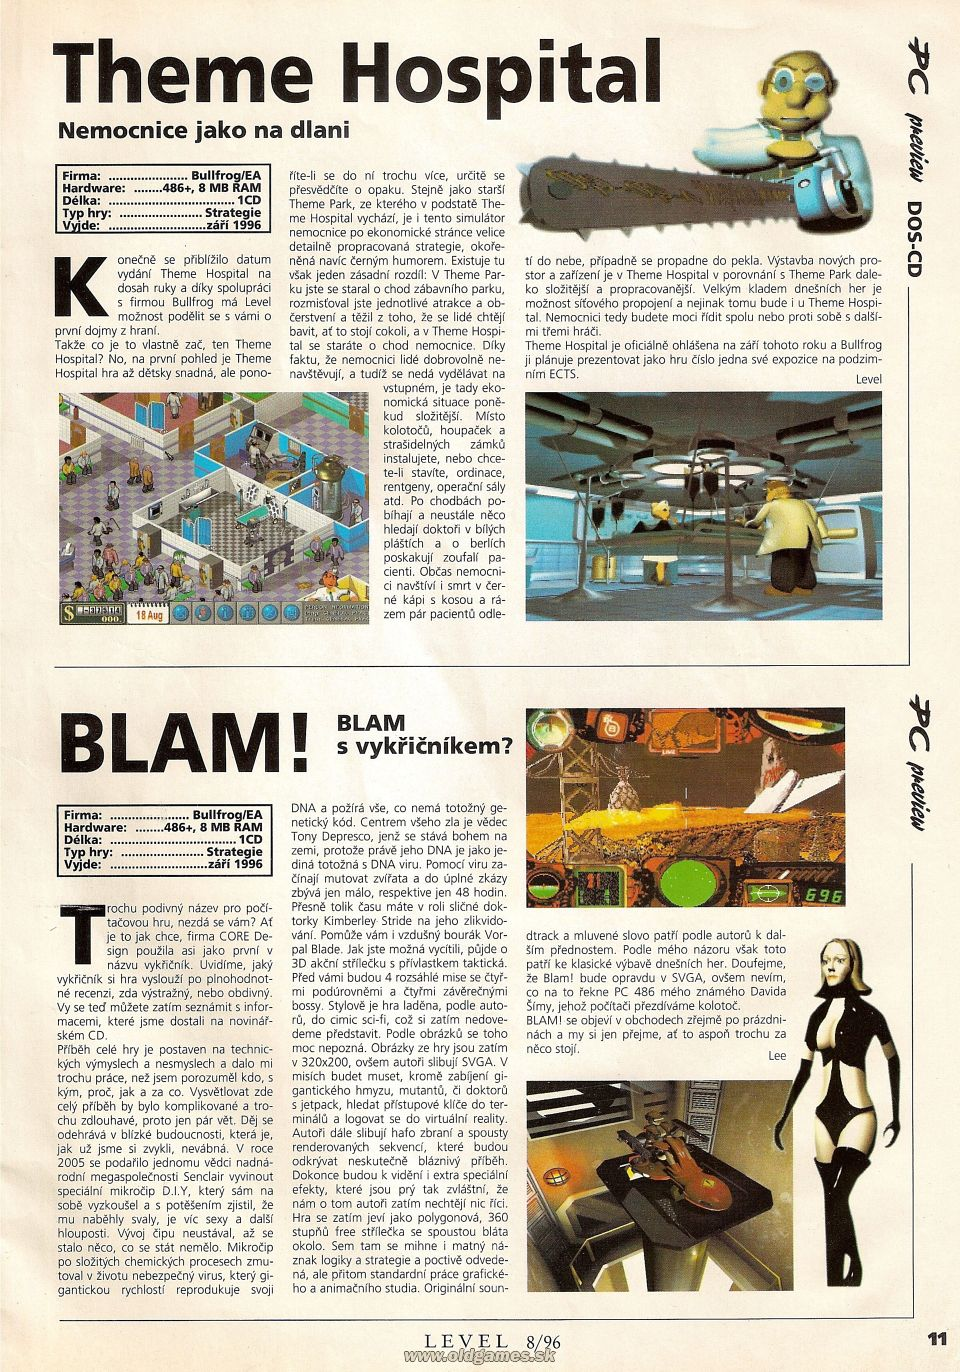 Preview: Theme Hospital, Blam!